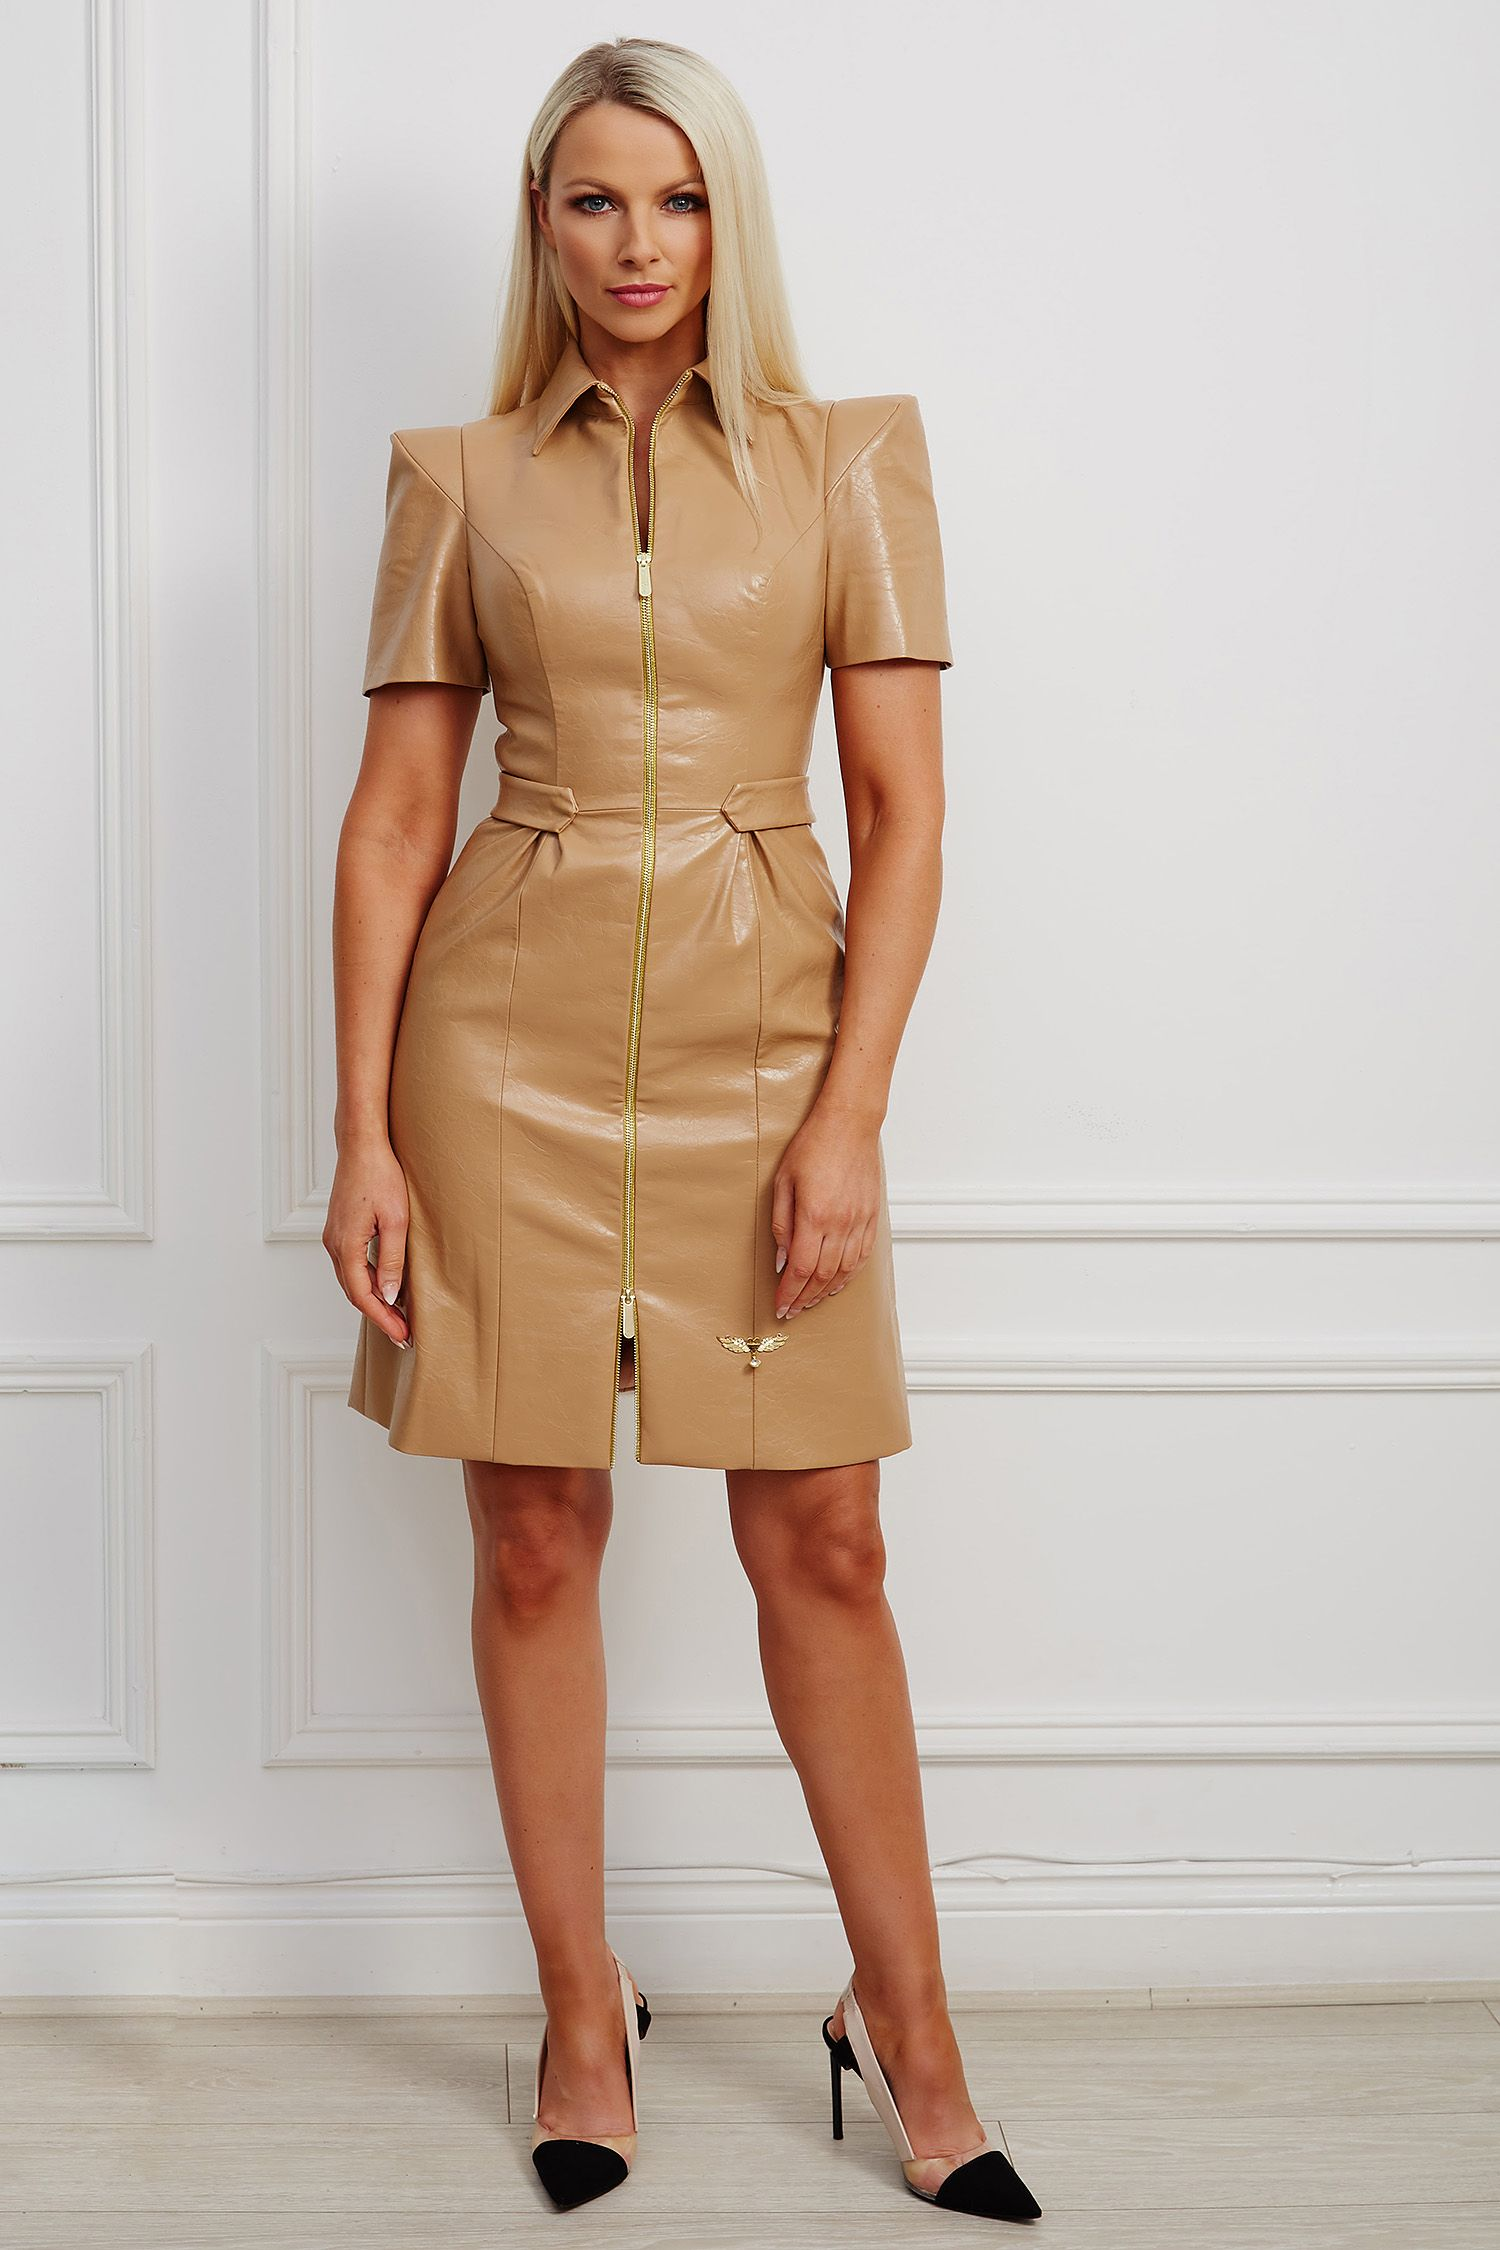 Tan faux-leather mini dress with structured shoulder and gold hardware